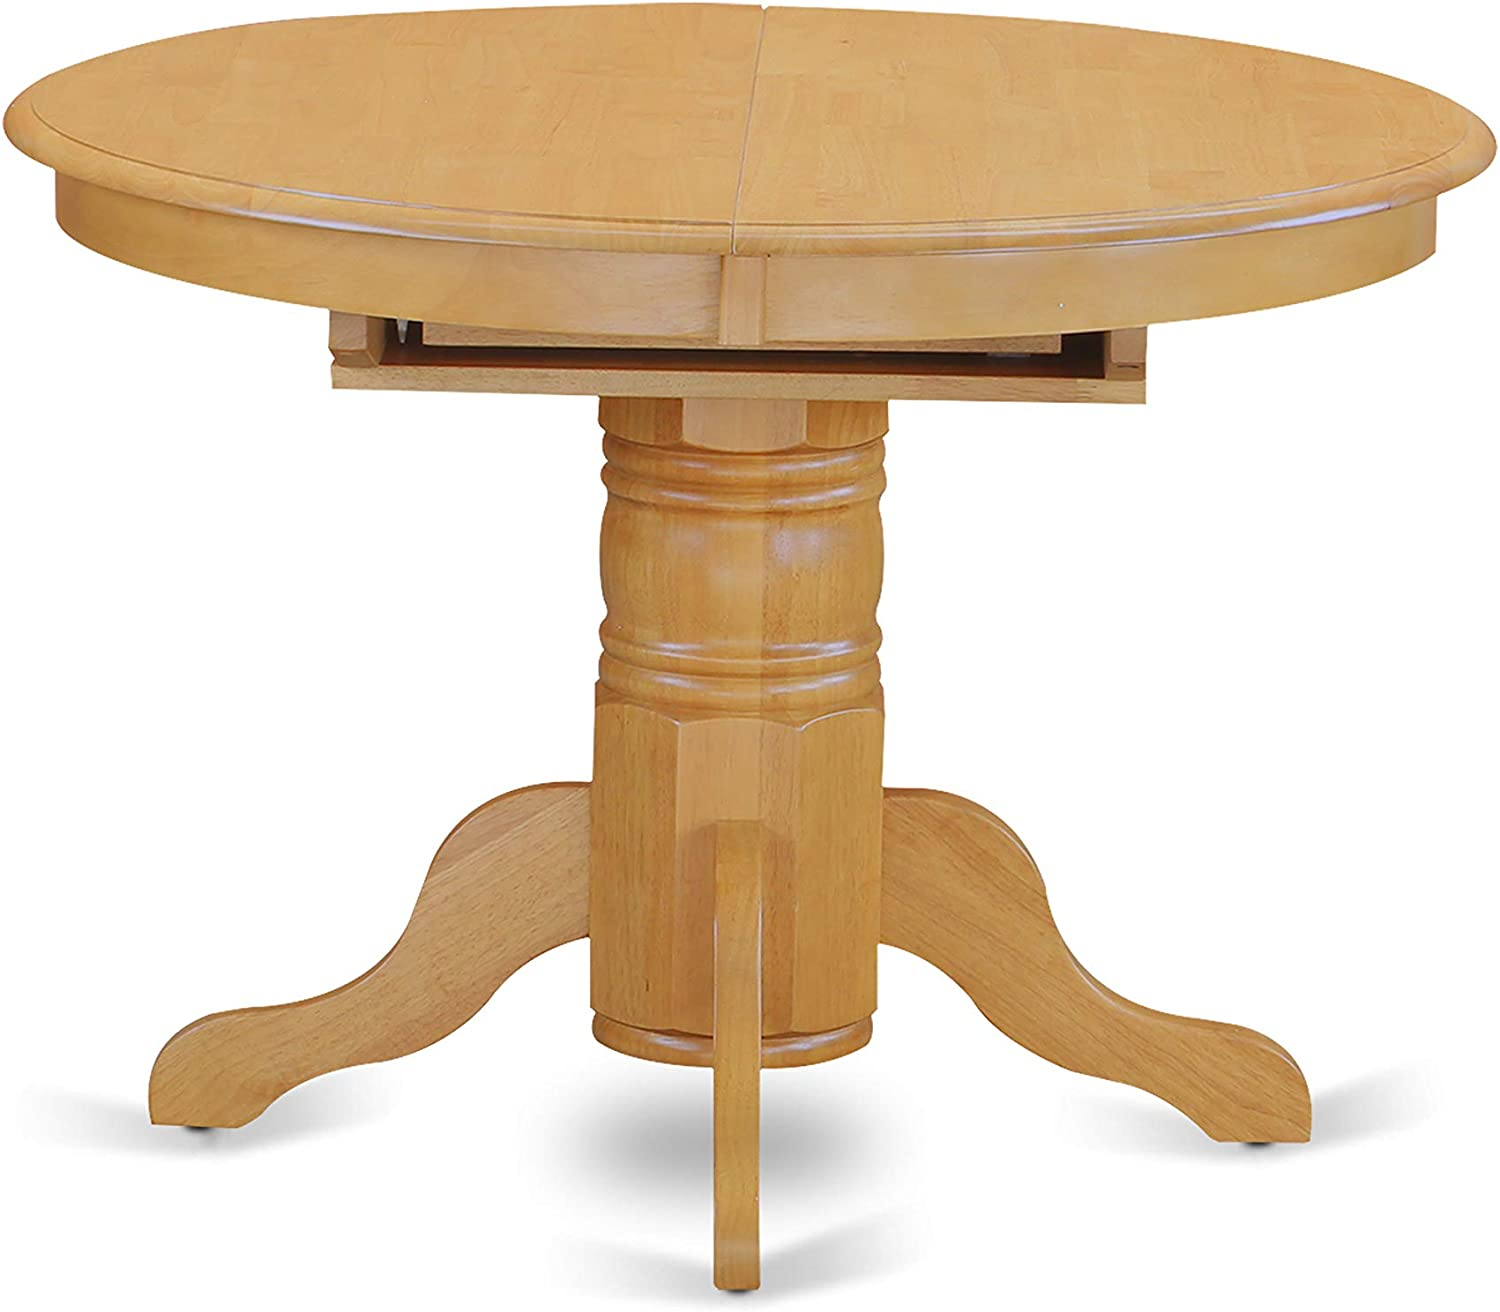 East West Furniture Kitchen table set 9 Wonderful dining room chairs   A  Wonderful round wooden dining table  Oak Color Wooden Seat Oak Butterfly  Leaf ...